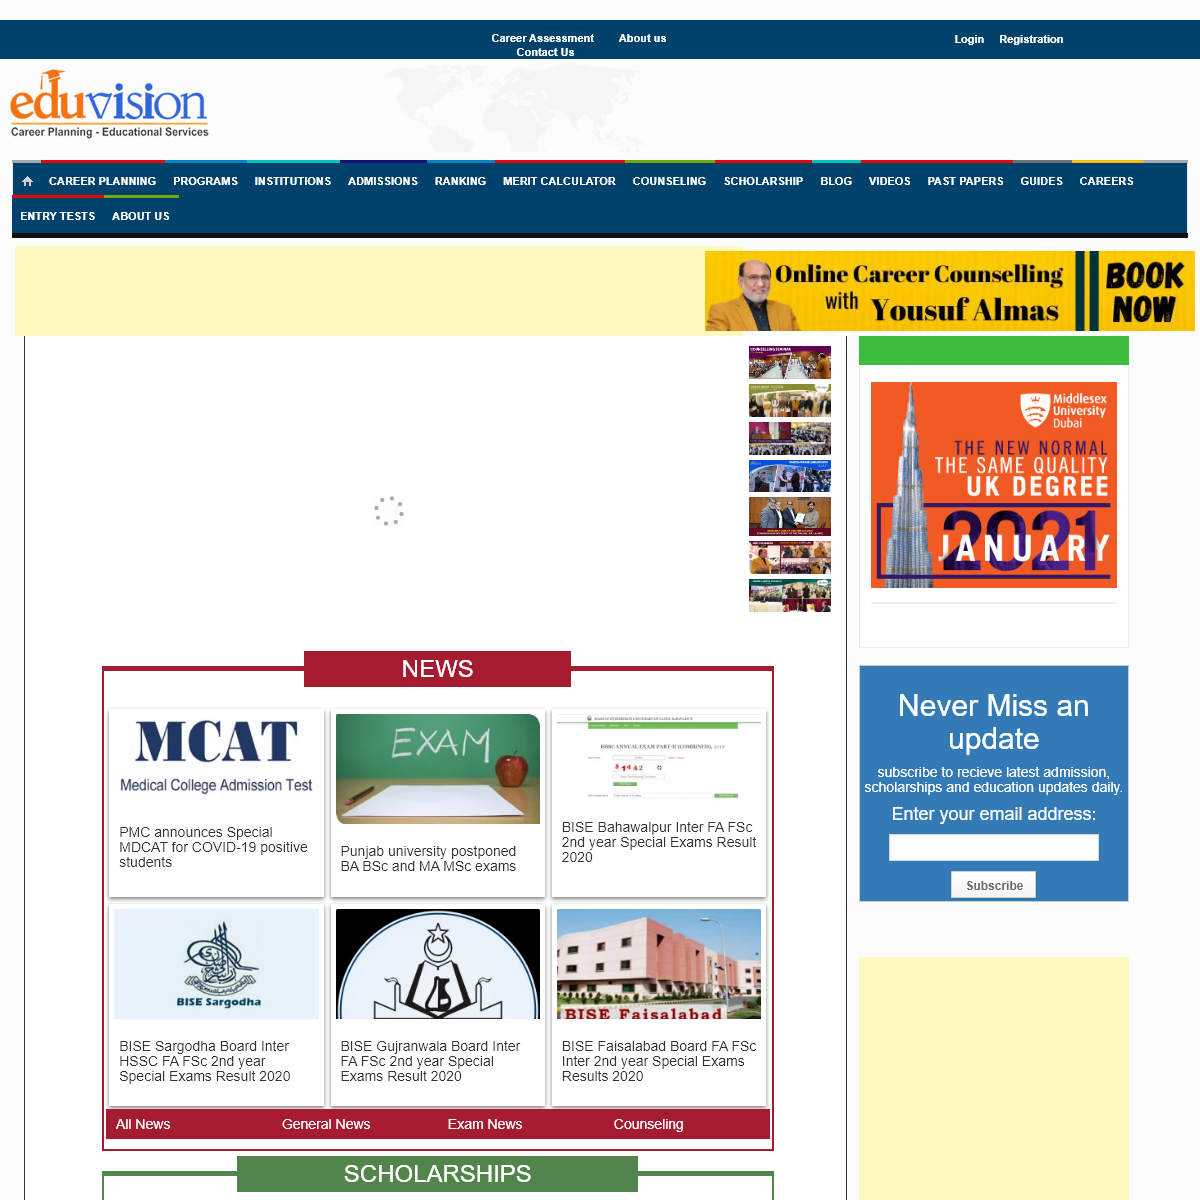 EduVision - Career Planning and Educational Guidance